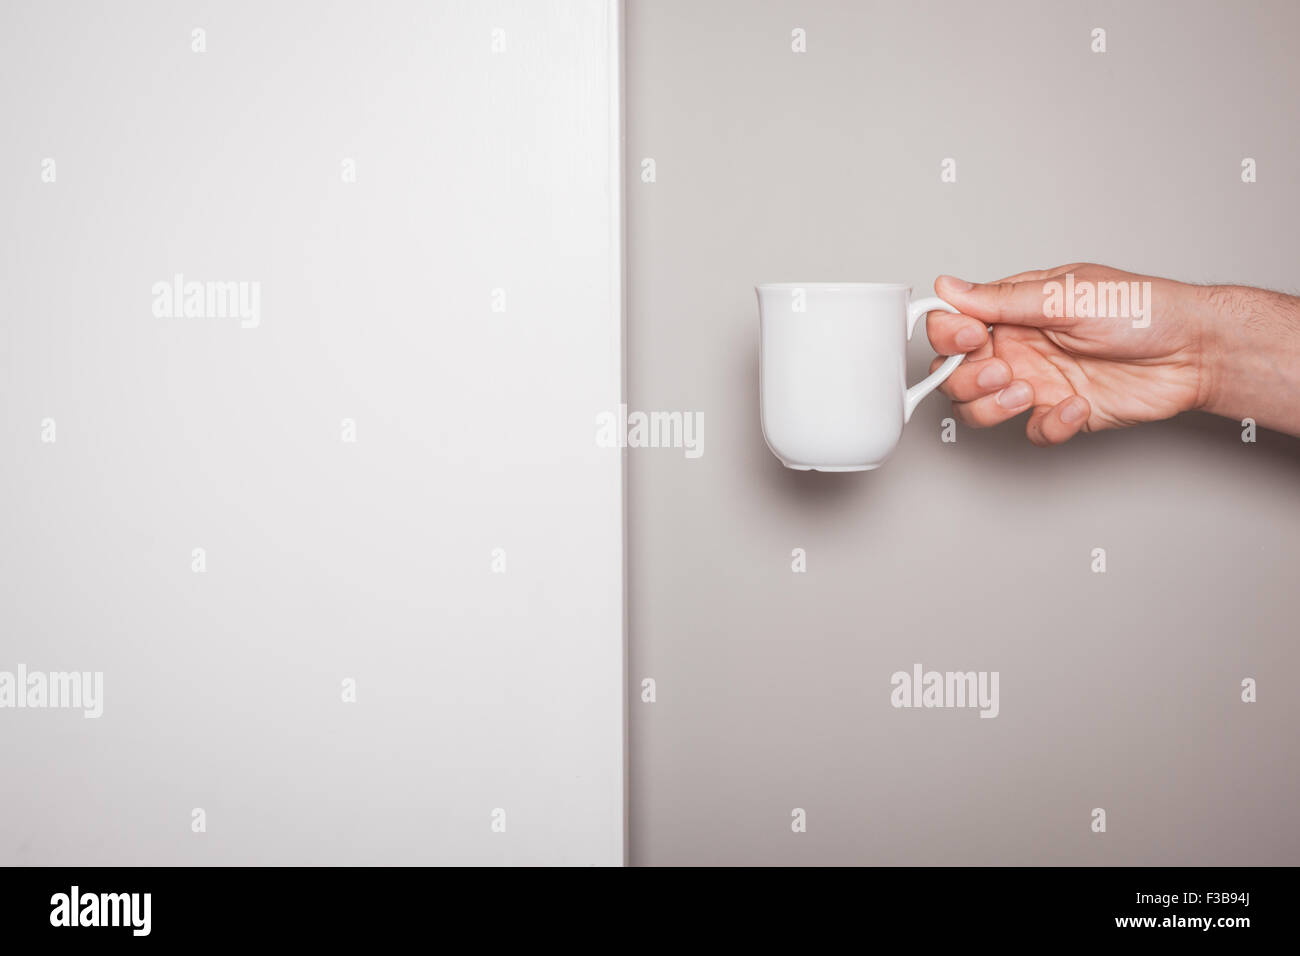 A Hand is holding a white cup against a green and white background - Stock Image